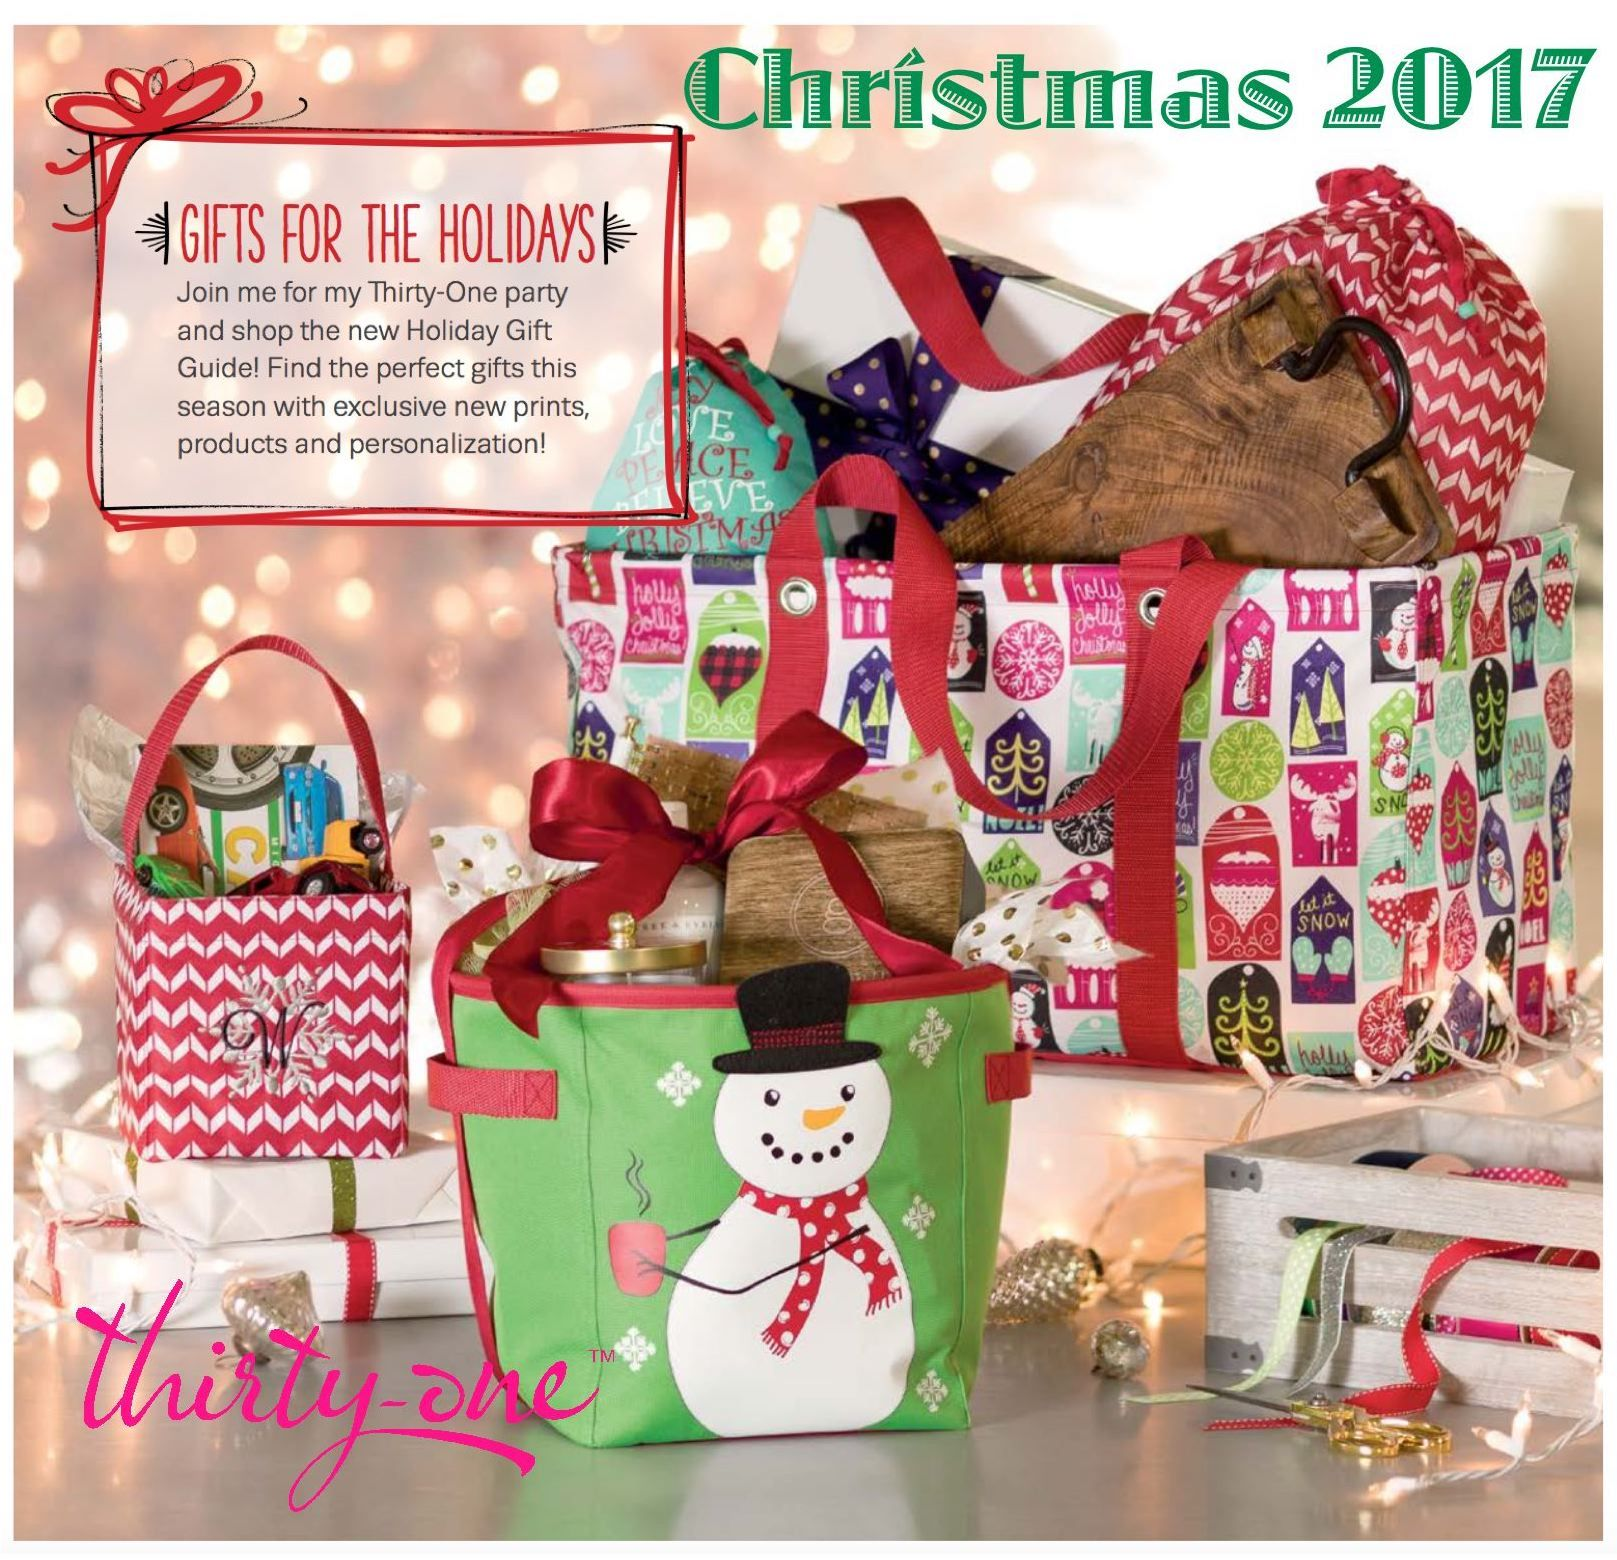 GIFTS FOR THE HOLIDAYS! Join your consultant for a Thirty ...